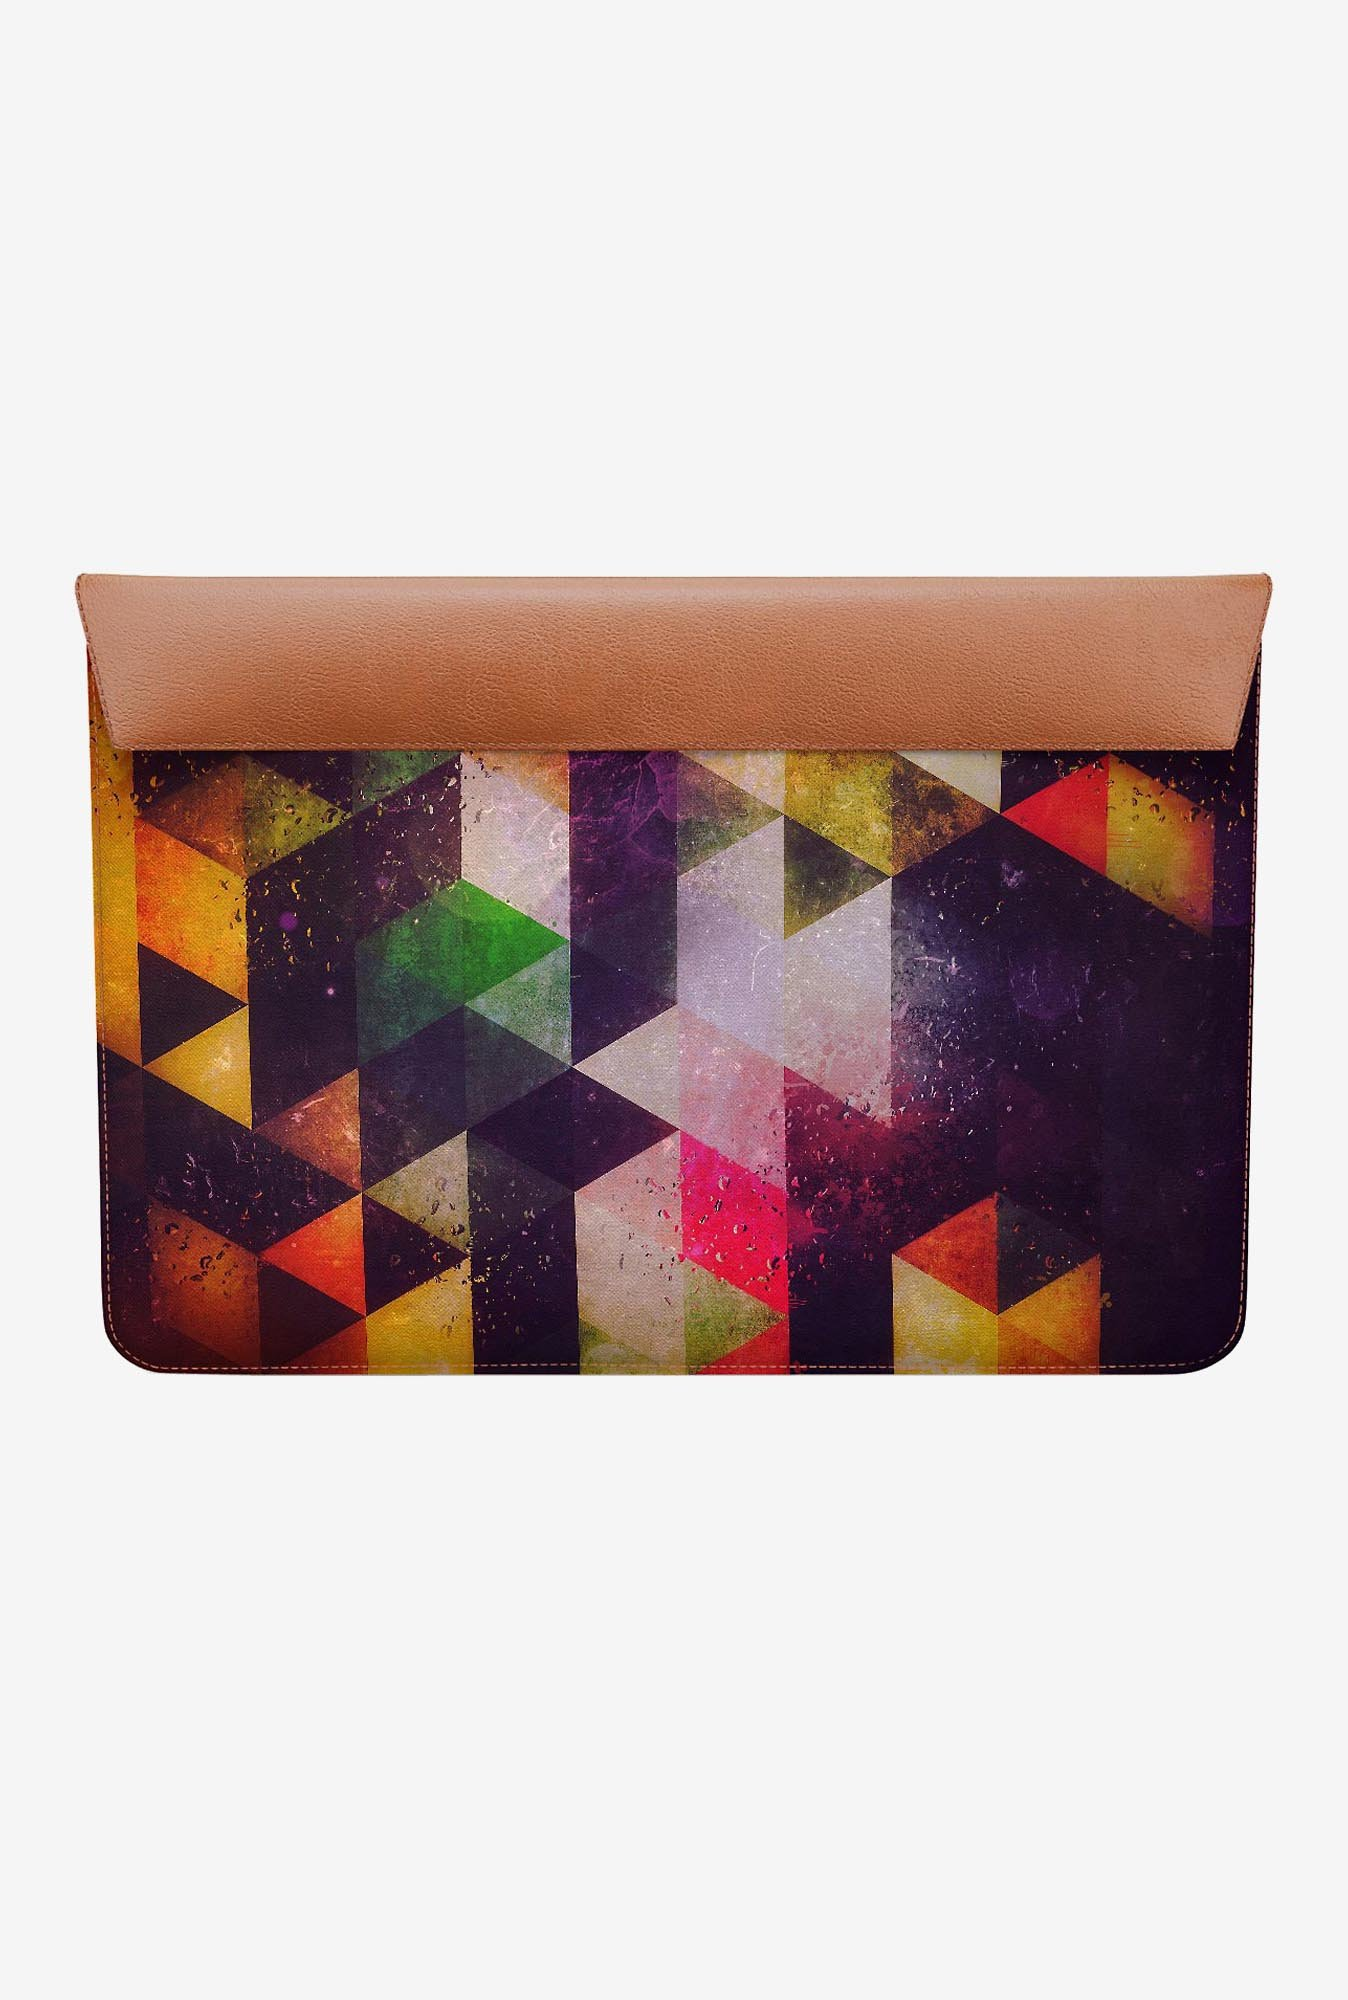 DailyObjects drwwnyng MacBook Air 11 Envelope Sleeve